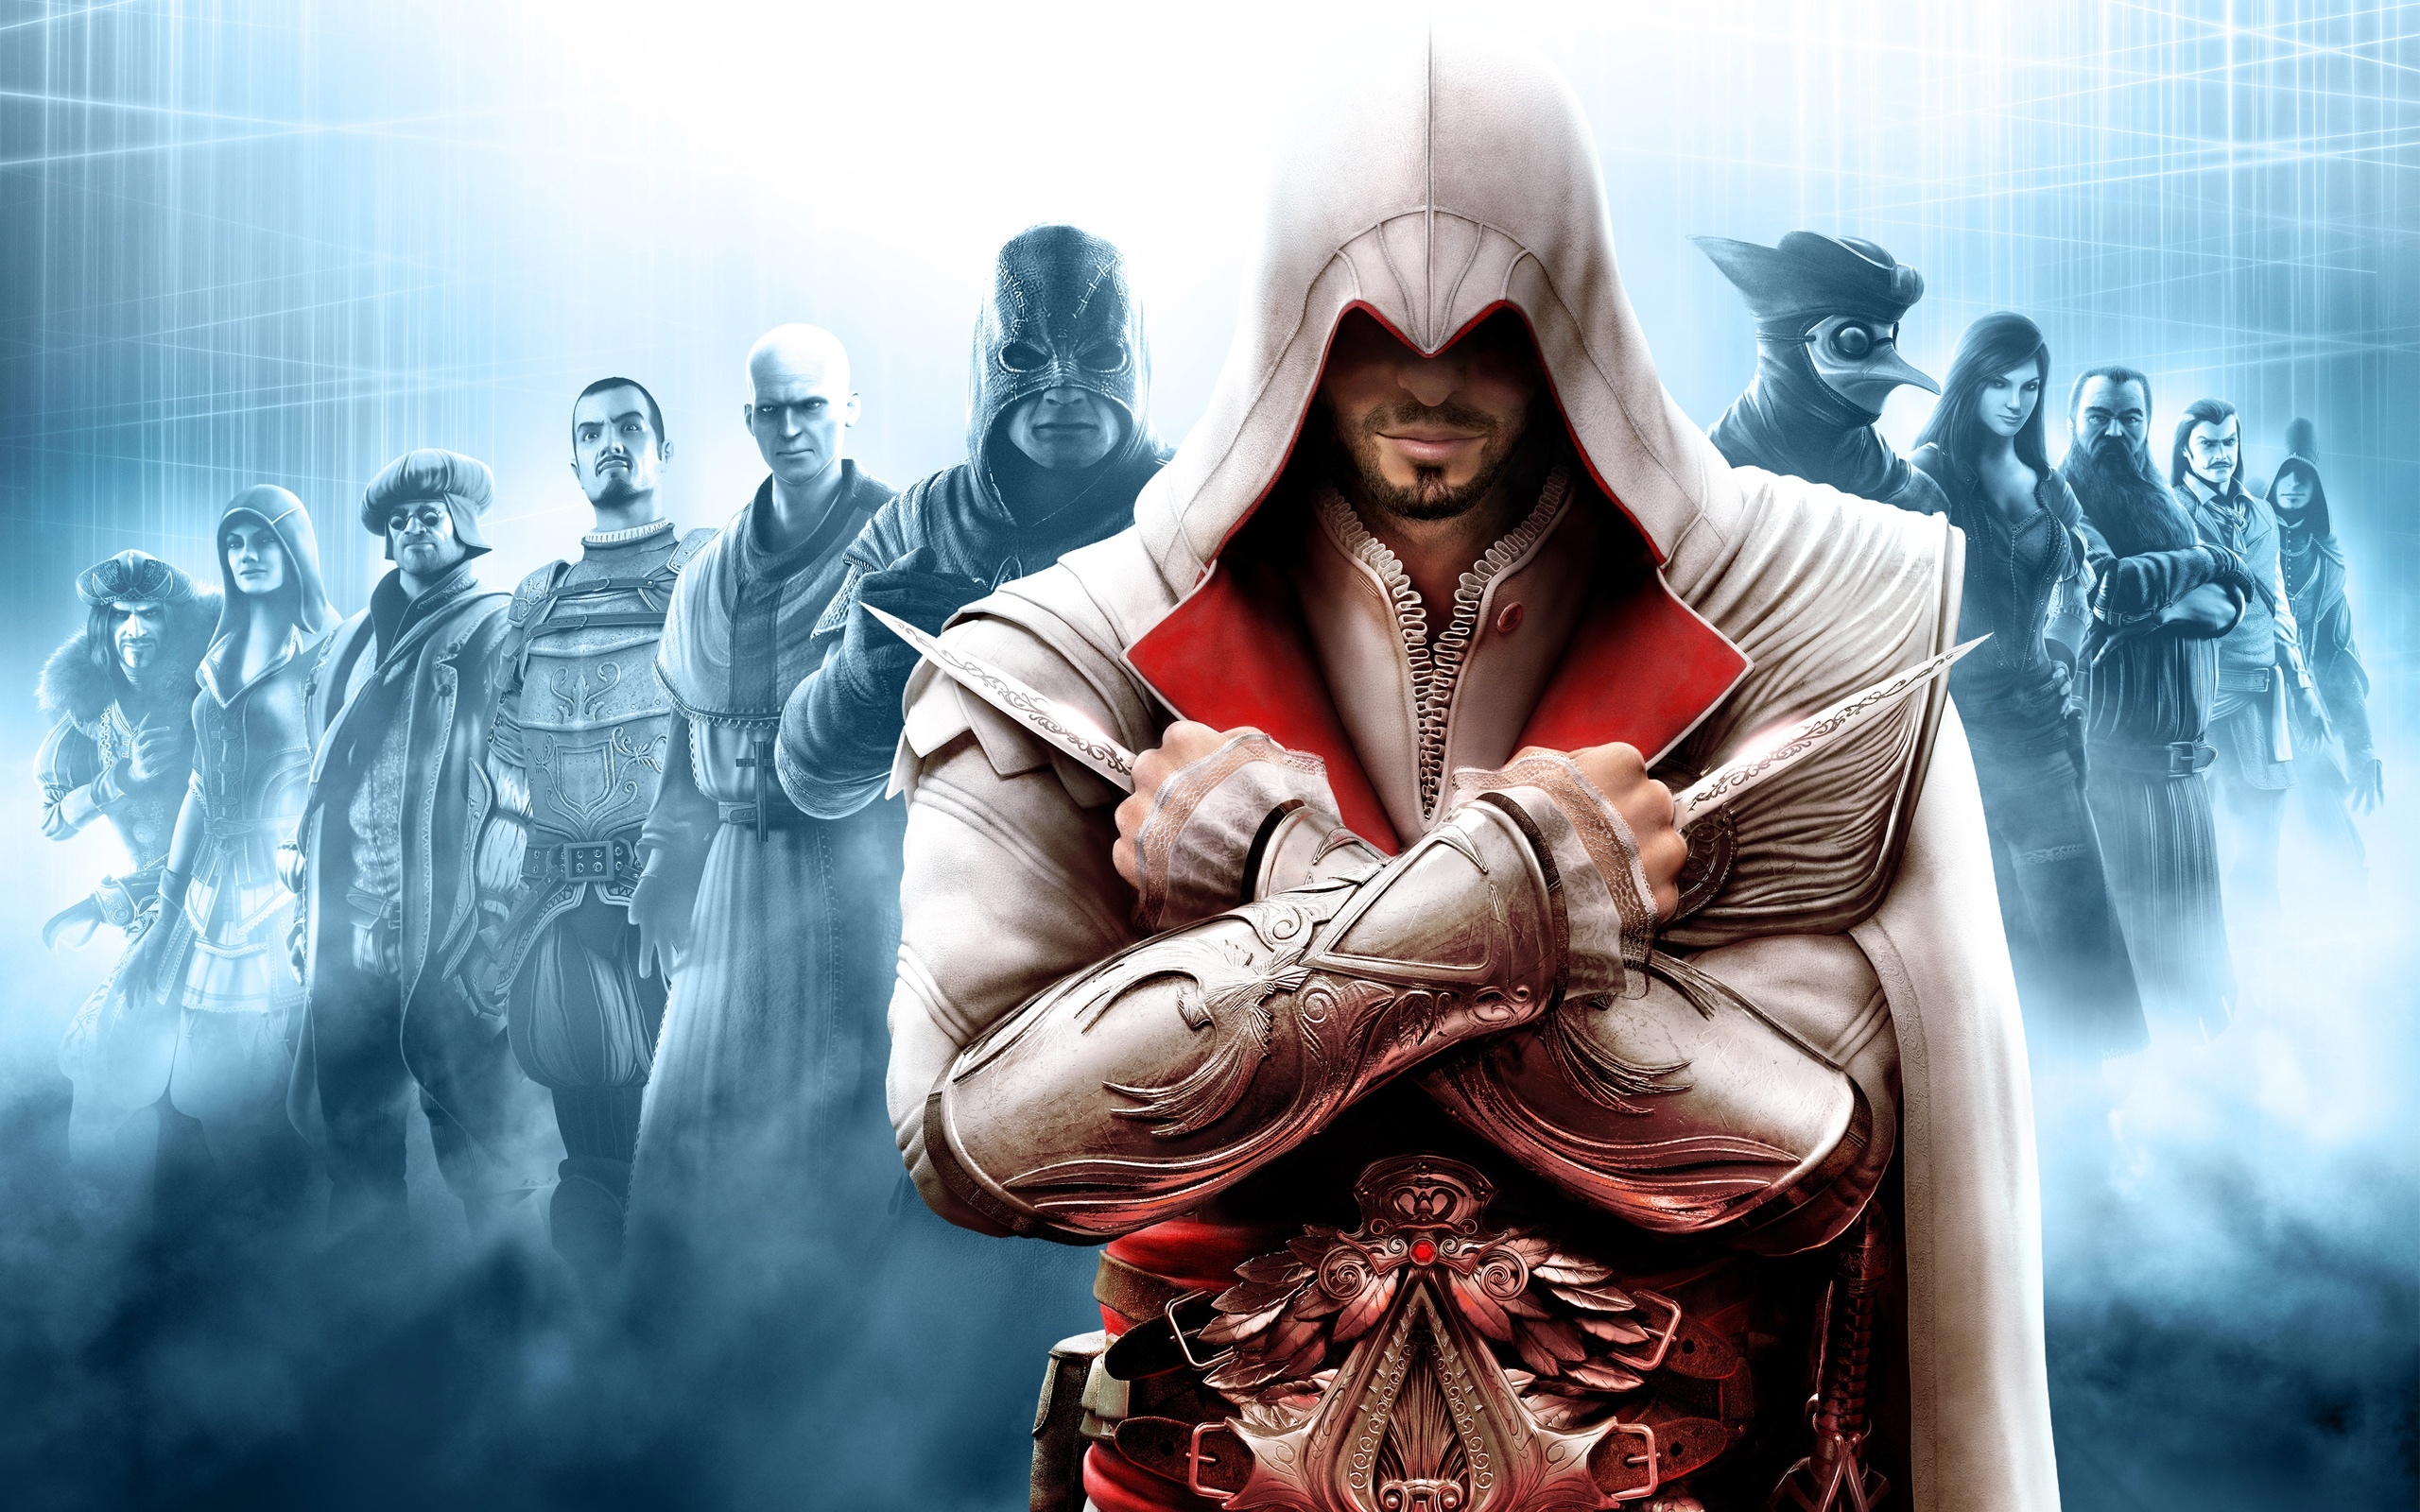 Assassin s Creed  Brotherhood HD Wallpaper   Background Image     Wallpapers ID 274587